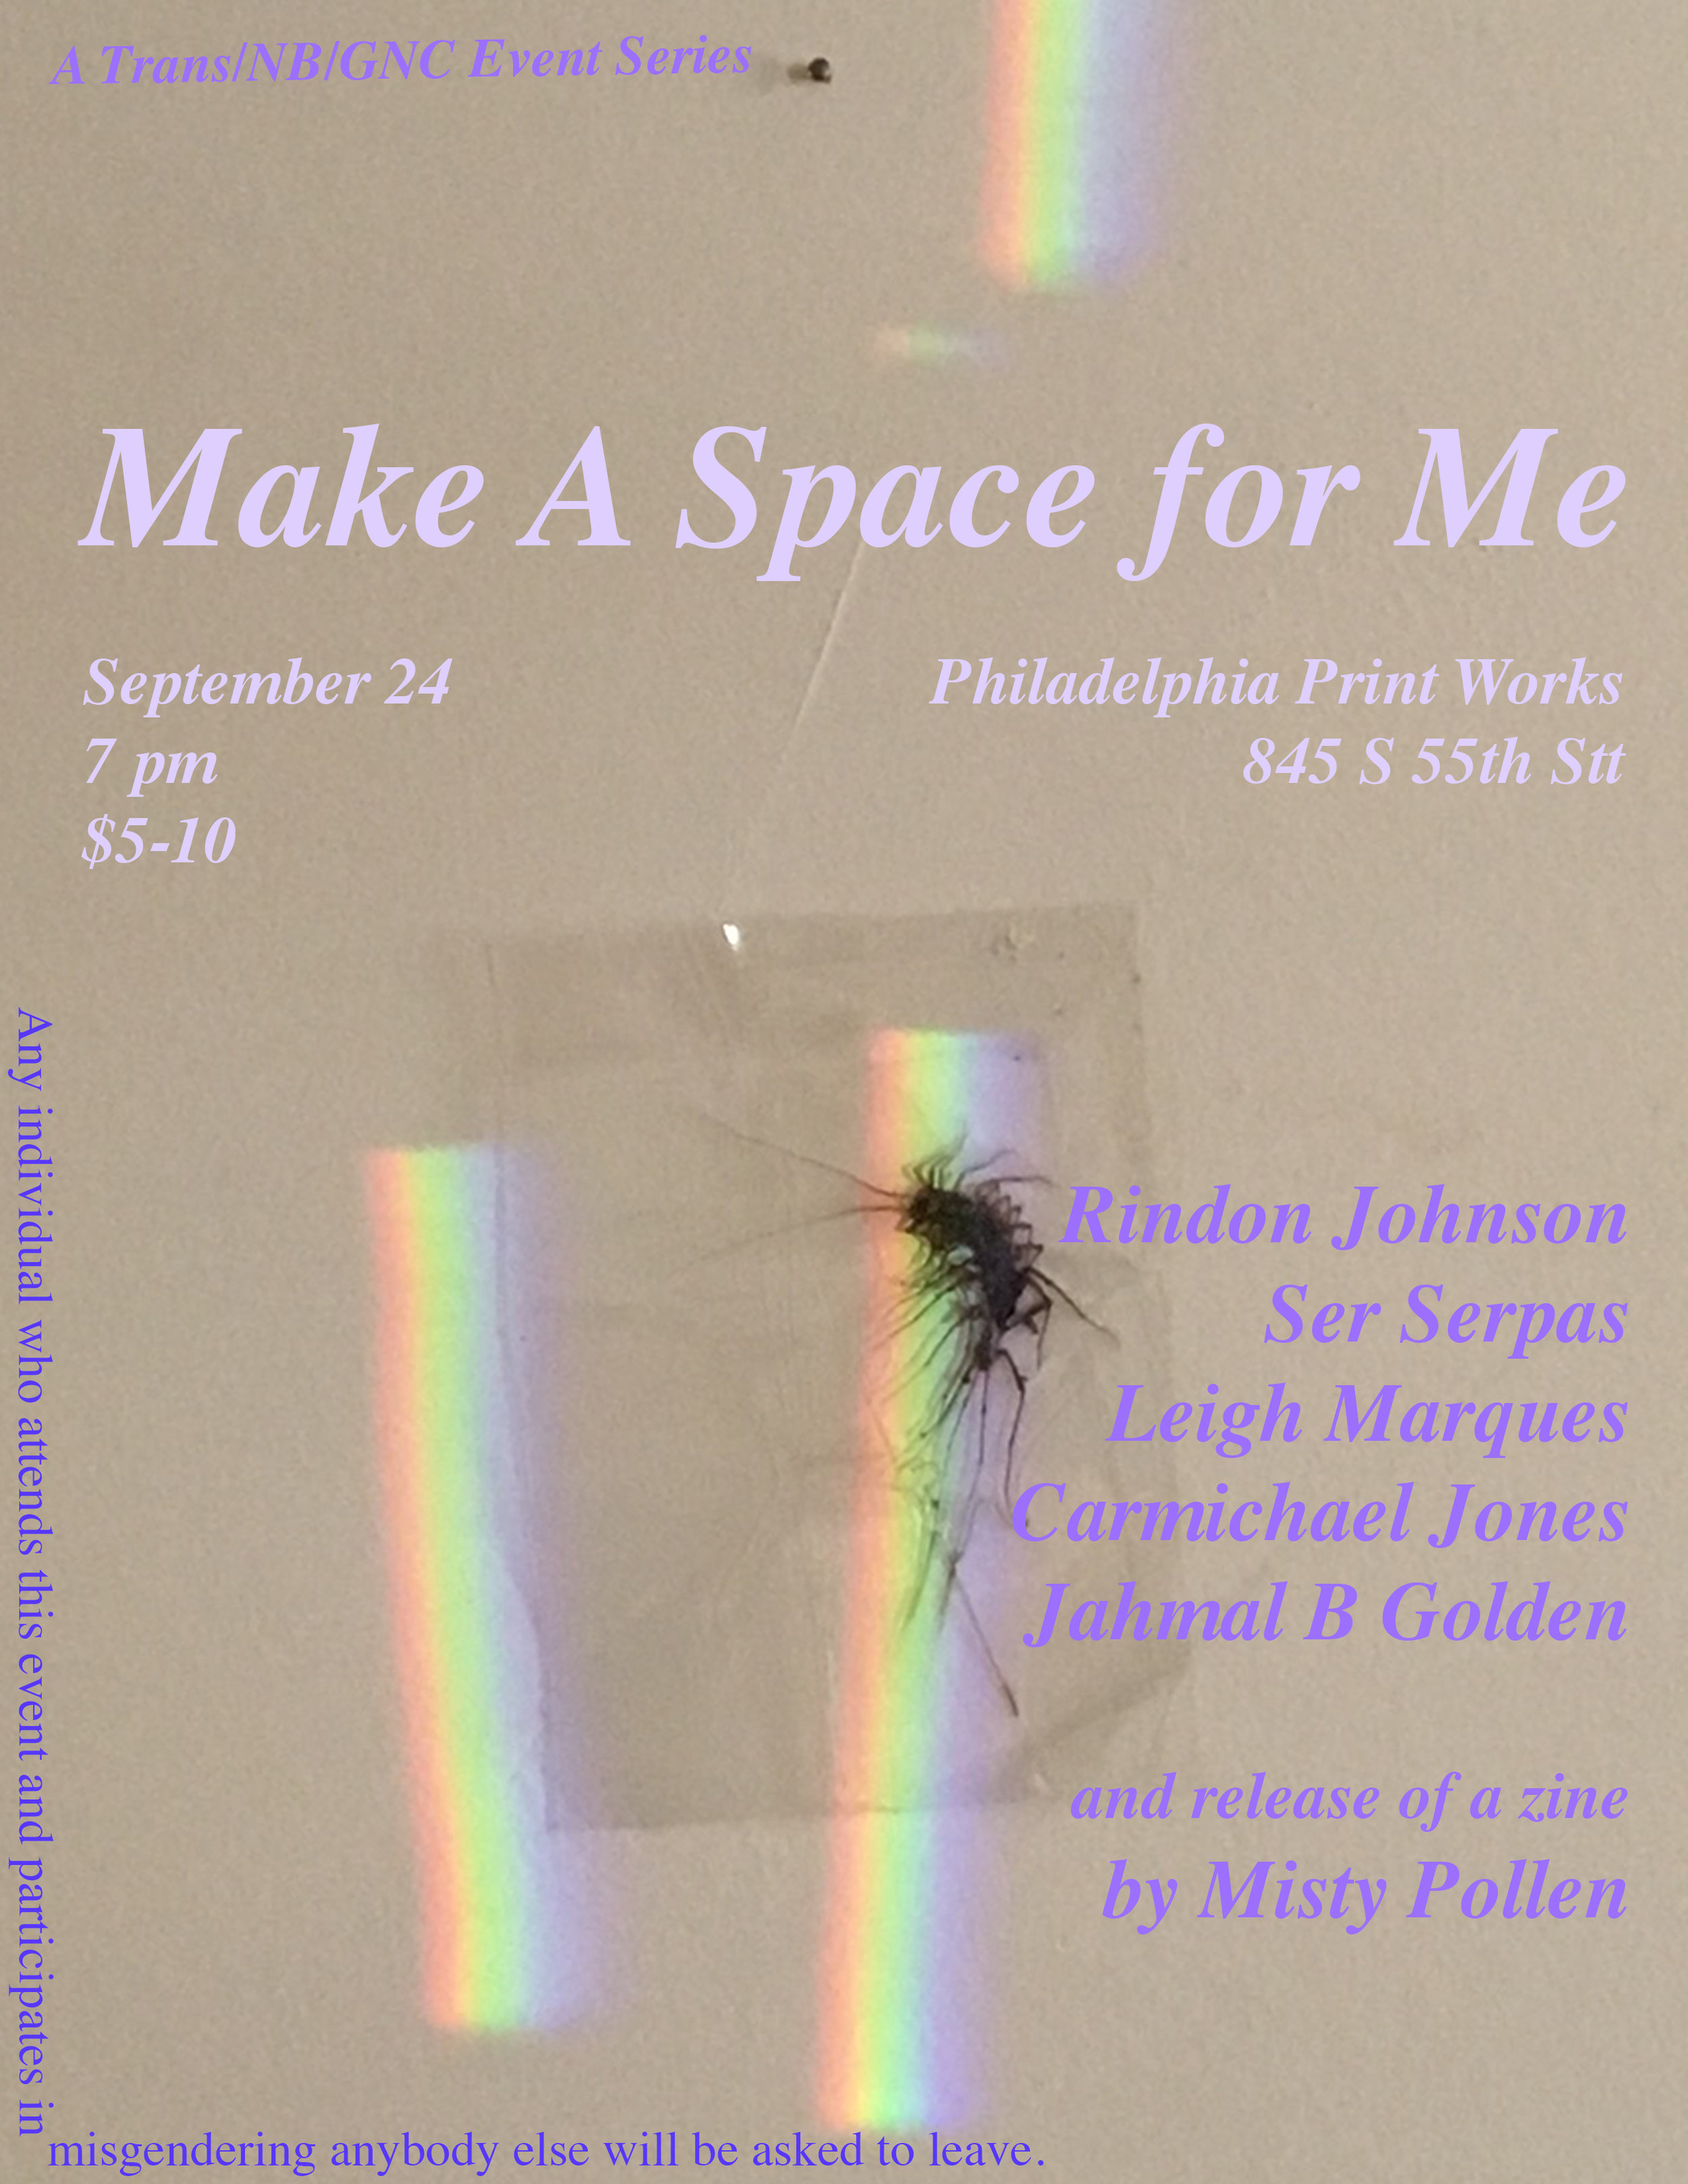 Make A Space for Me flyer3.jpg